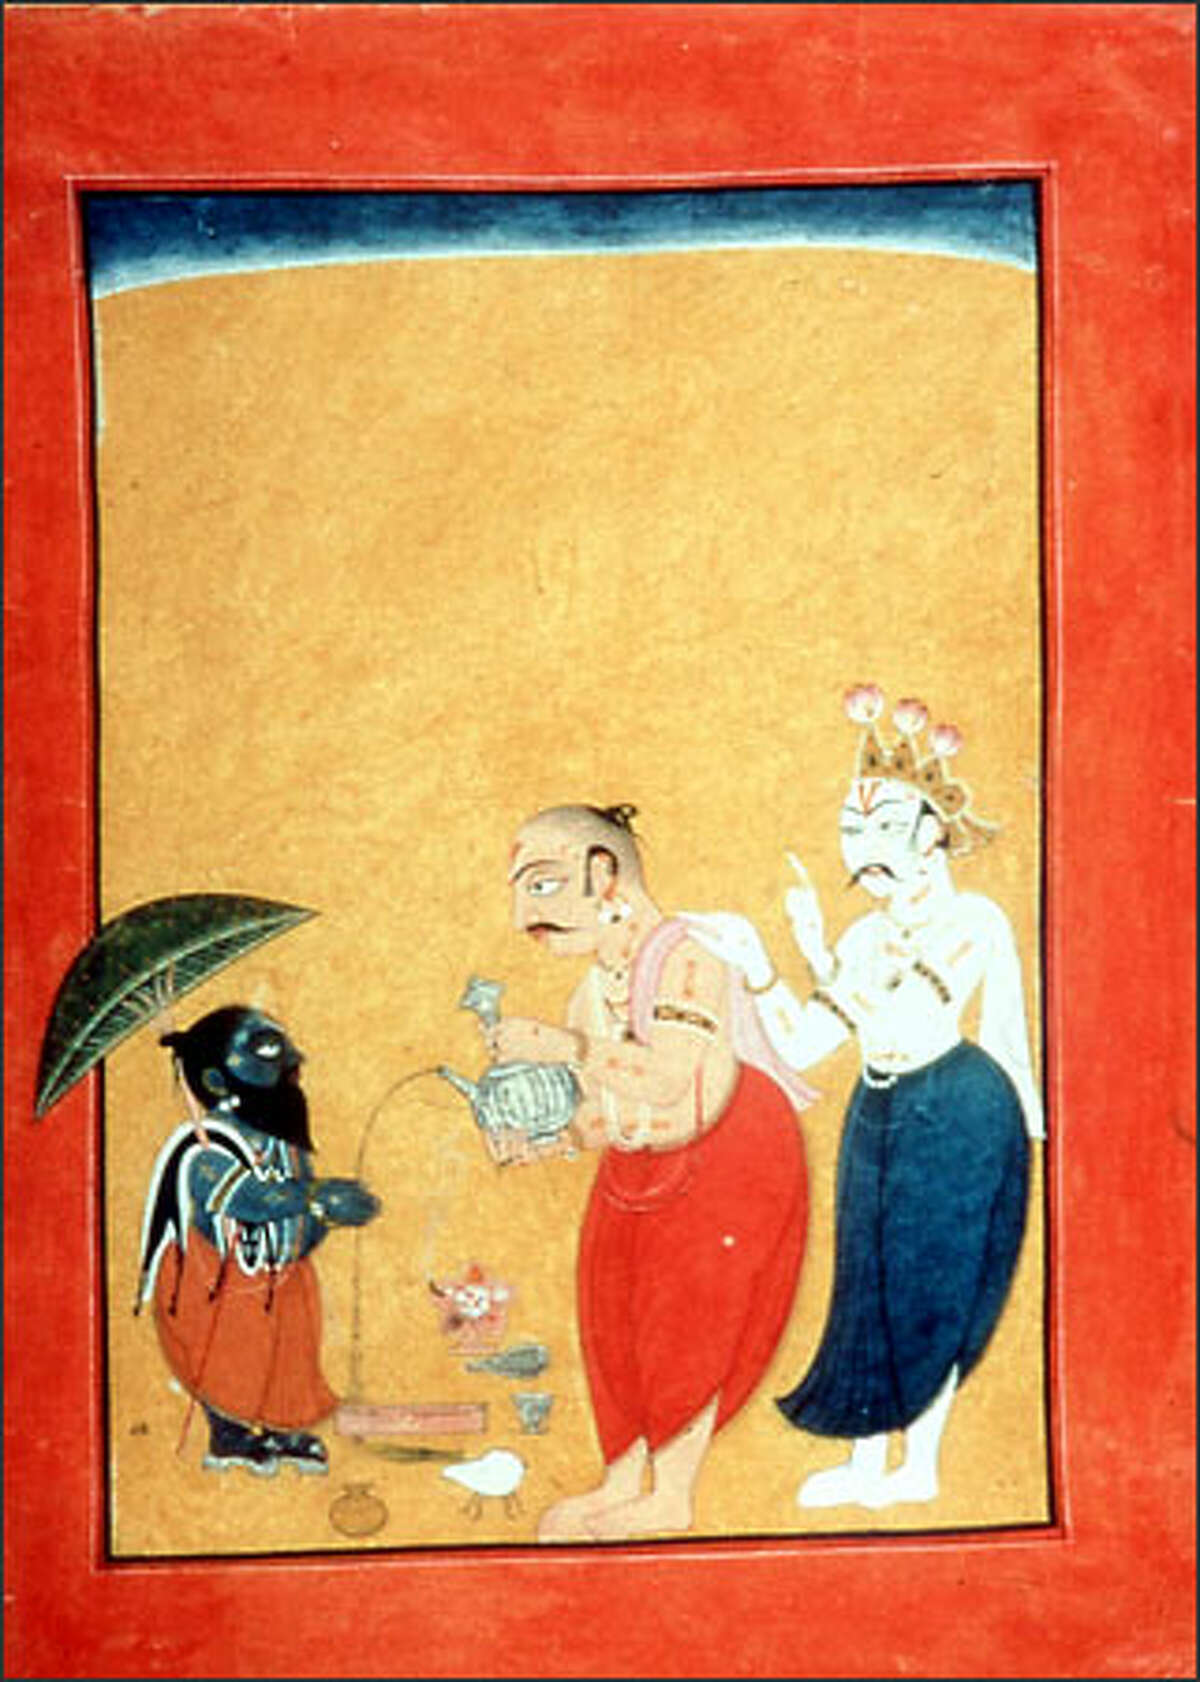 The god Vishnu, disguised as Vamana the dwarf, attempts to trick the demon king Bali despite the protestations of Shukra, Bali's guru and adviser, in an opaque watercolor, gold and silver-colored paint on paper miniature from circa 1700-1725.